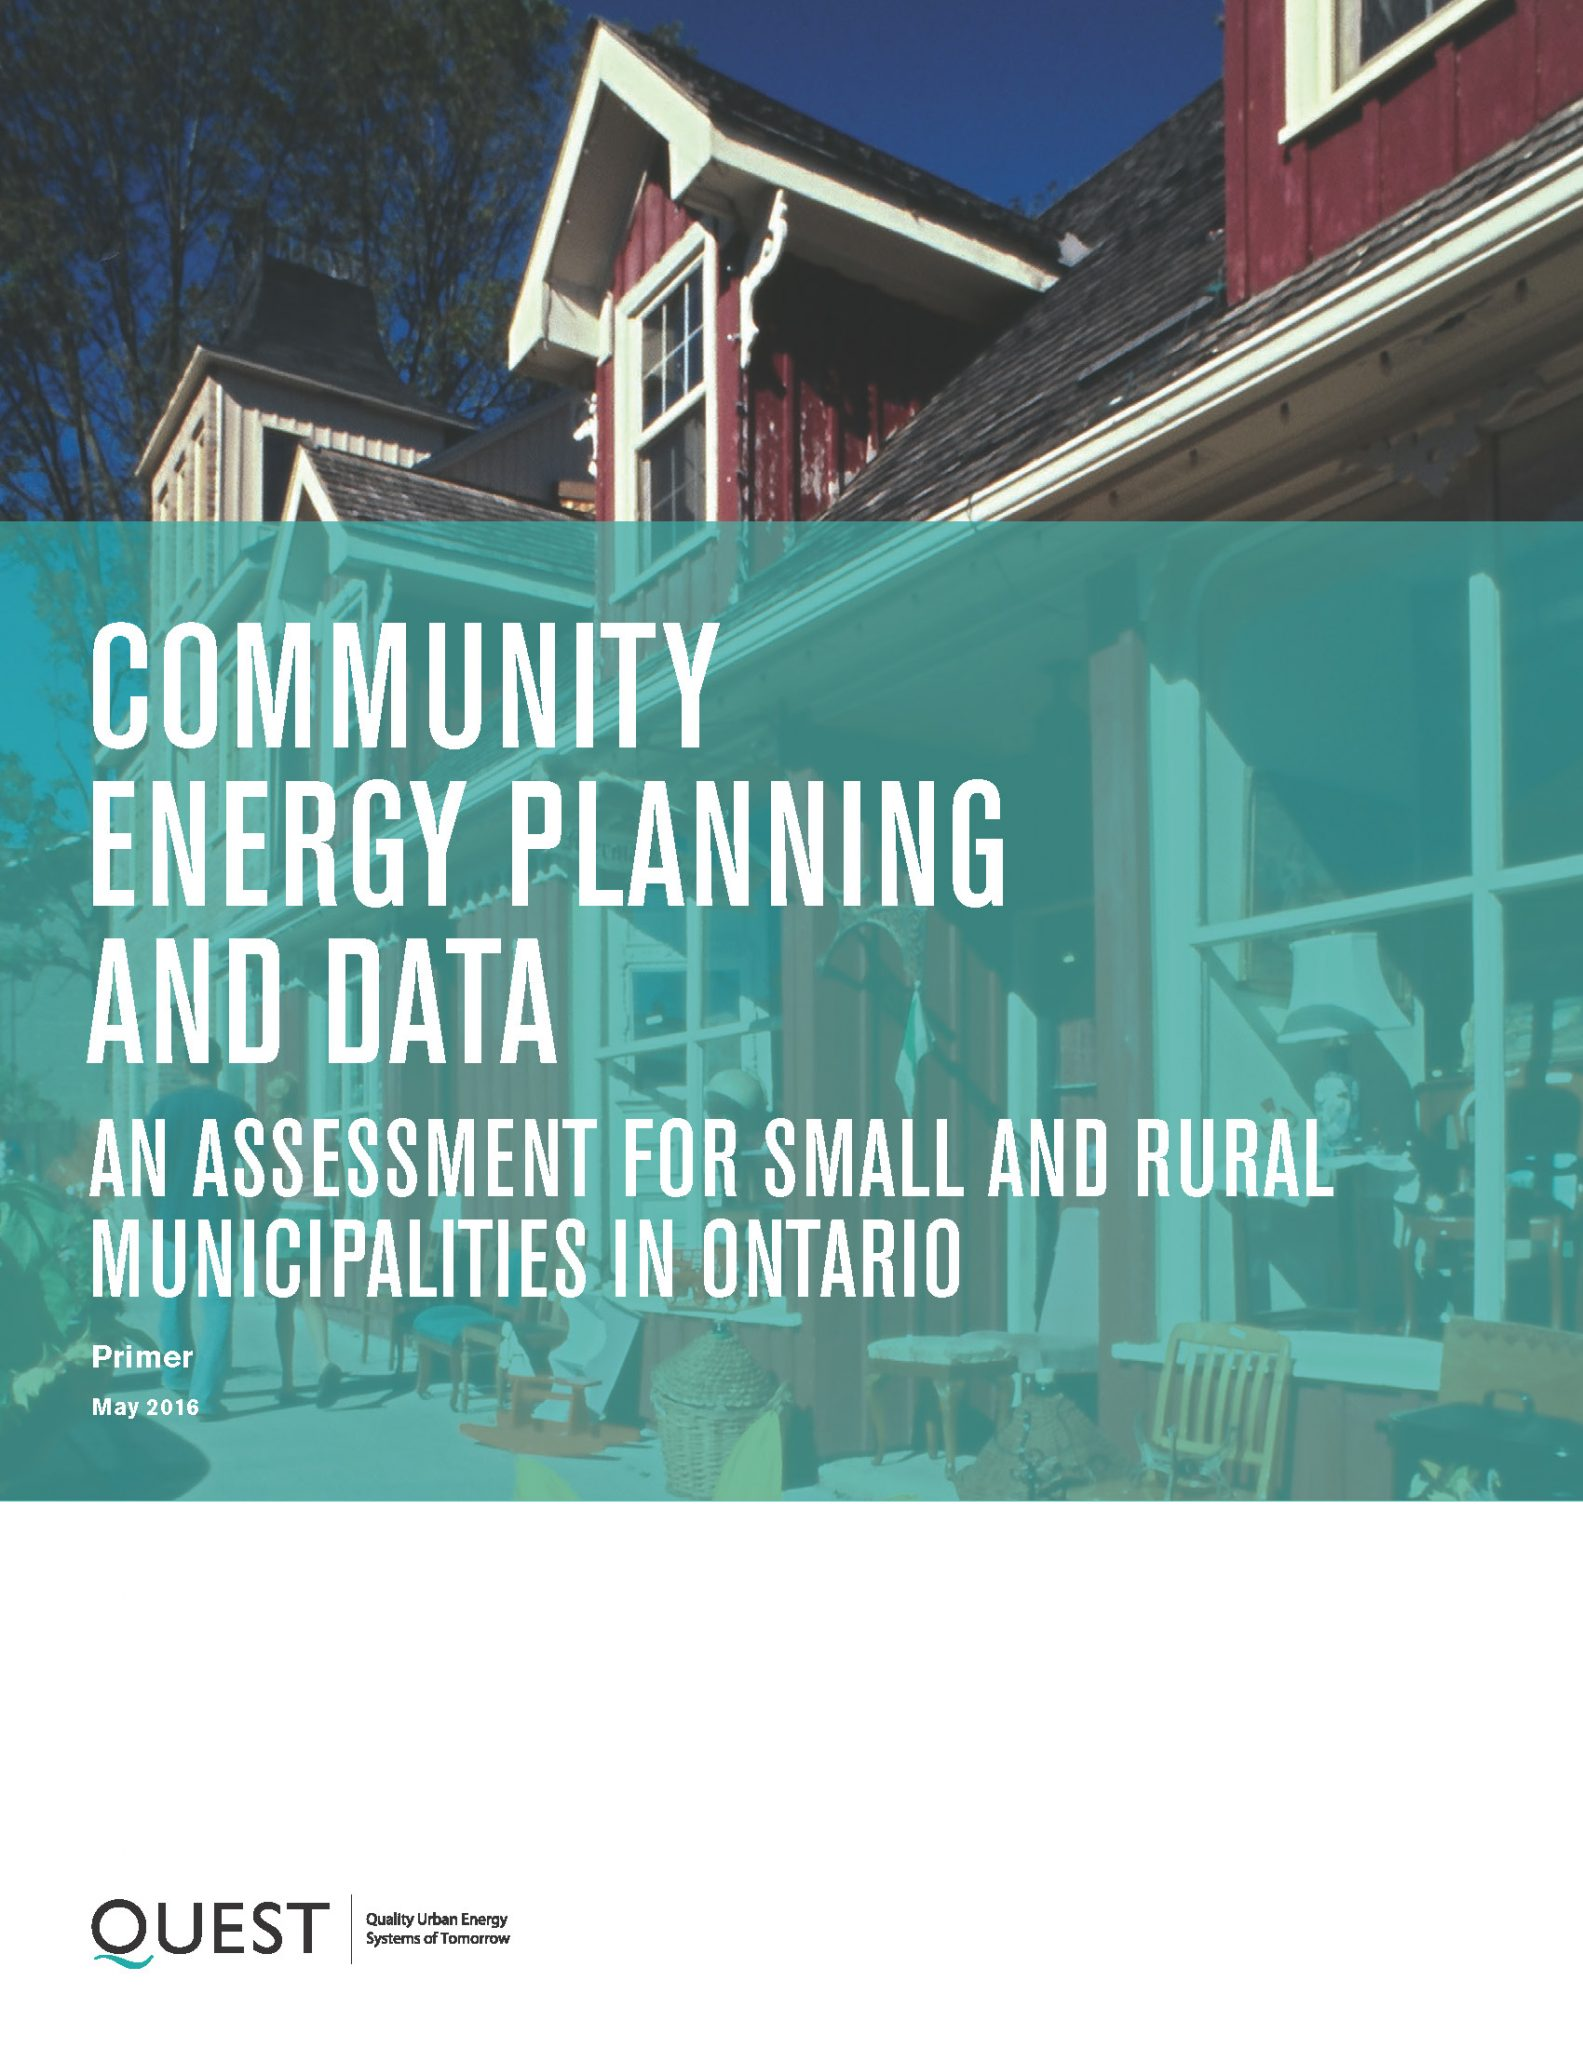 Community Energy Planning and Data